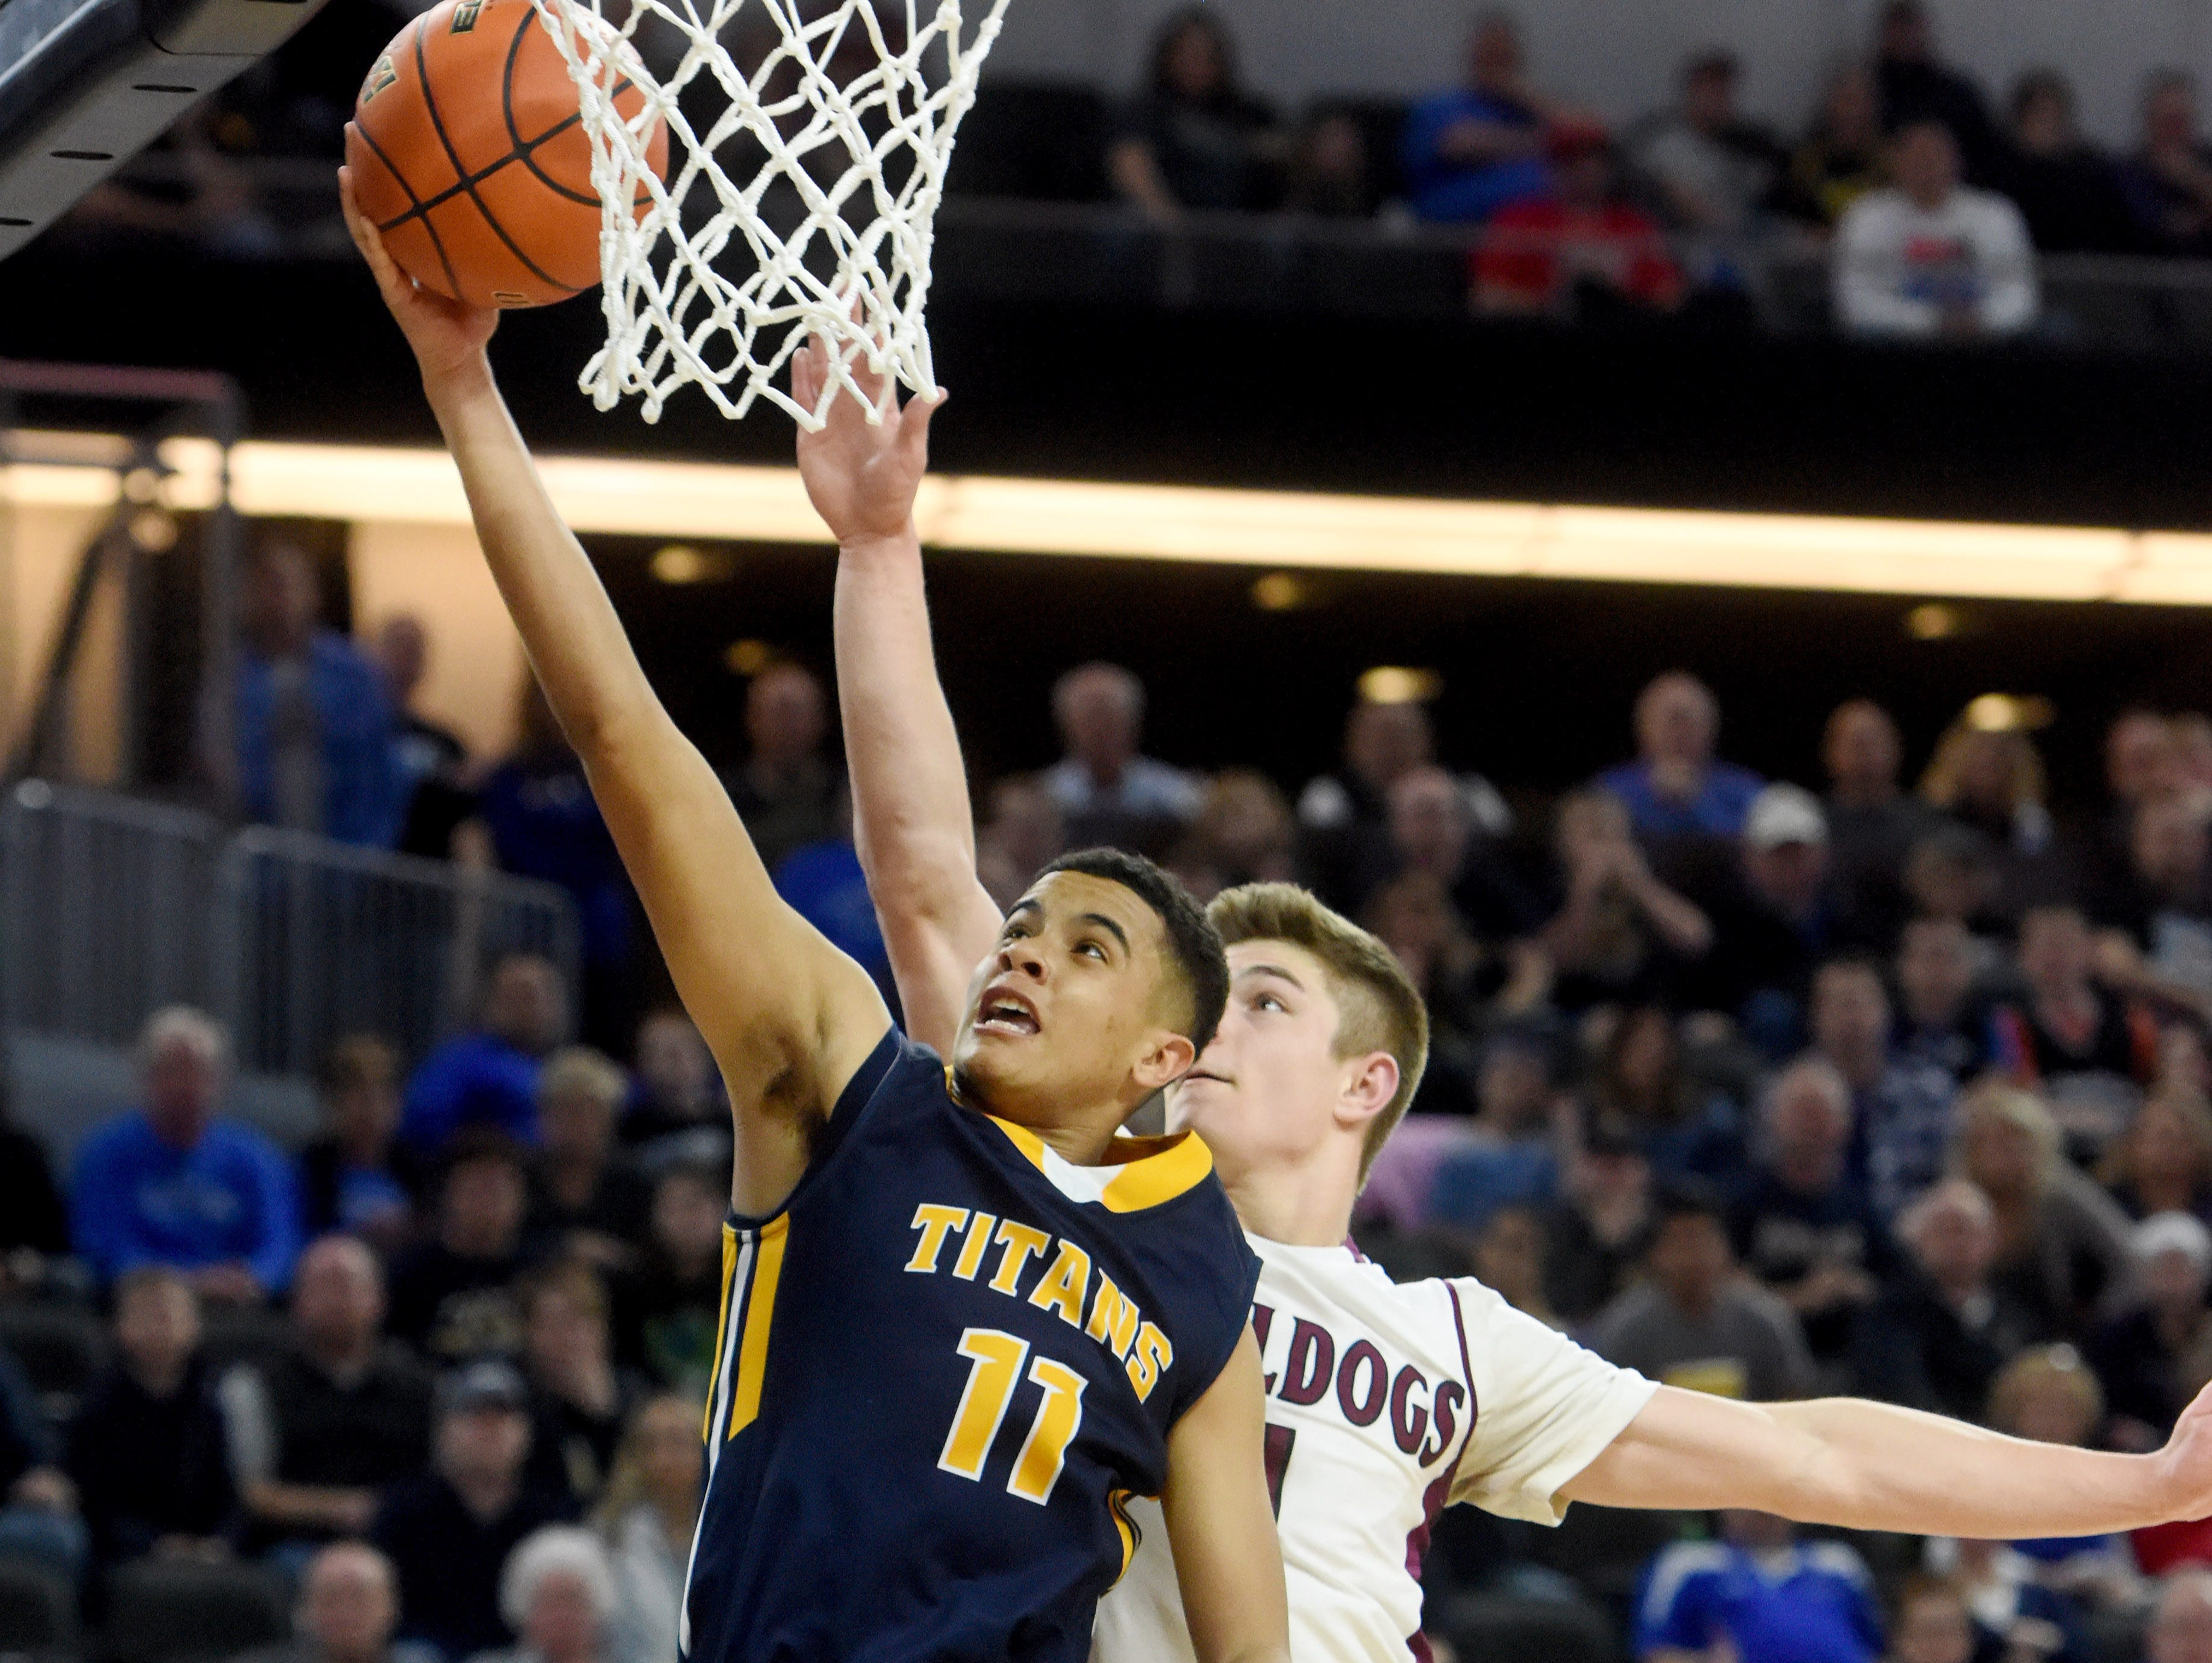 Tea Area's Justin Hohn-Mack goes up for a shot while Madison's Jaxon Janke defends during the 2017 SDHSAA Class A boy's basketball championship at the Denny Sanford Premier Center on Saturday, March 18, 2017.